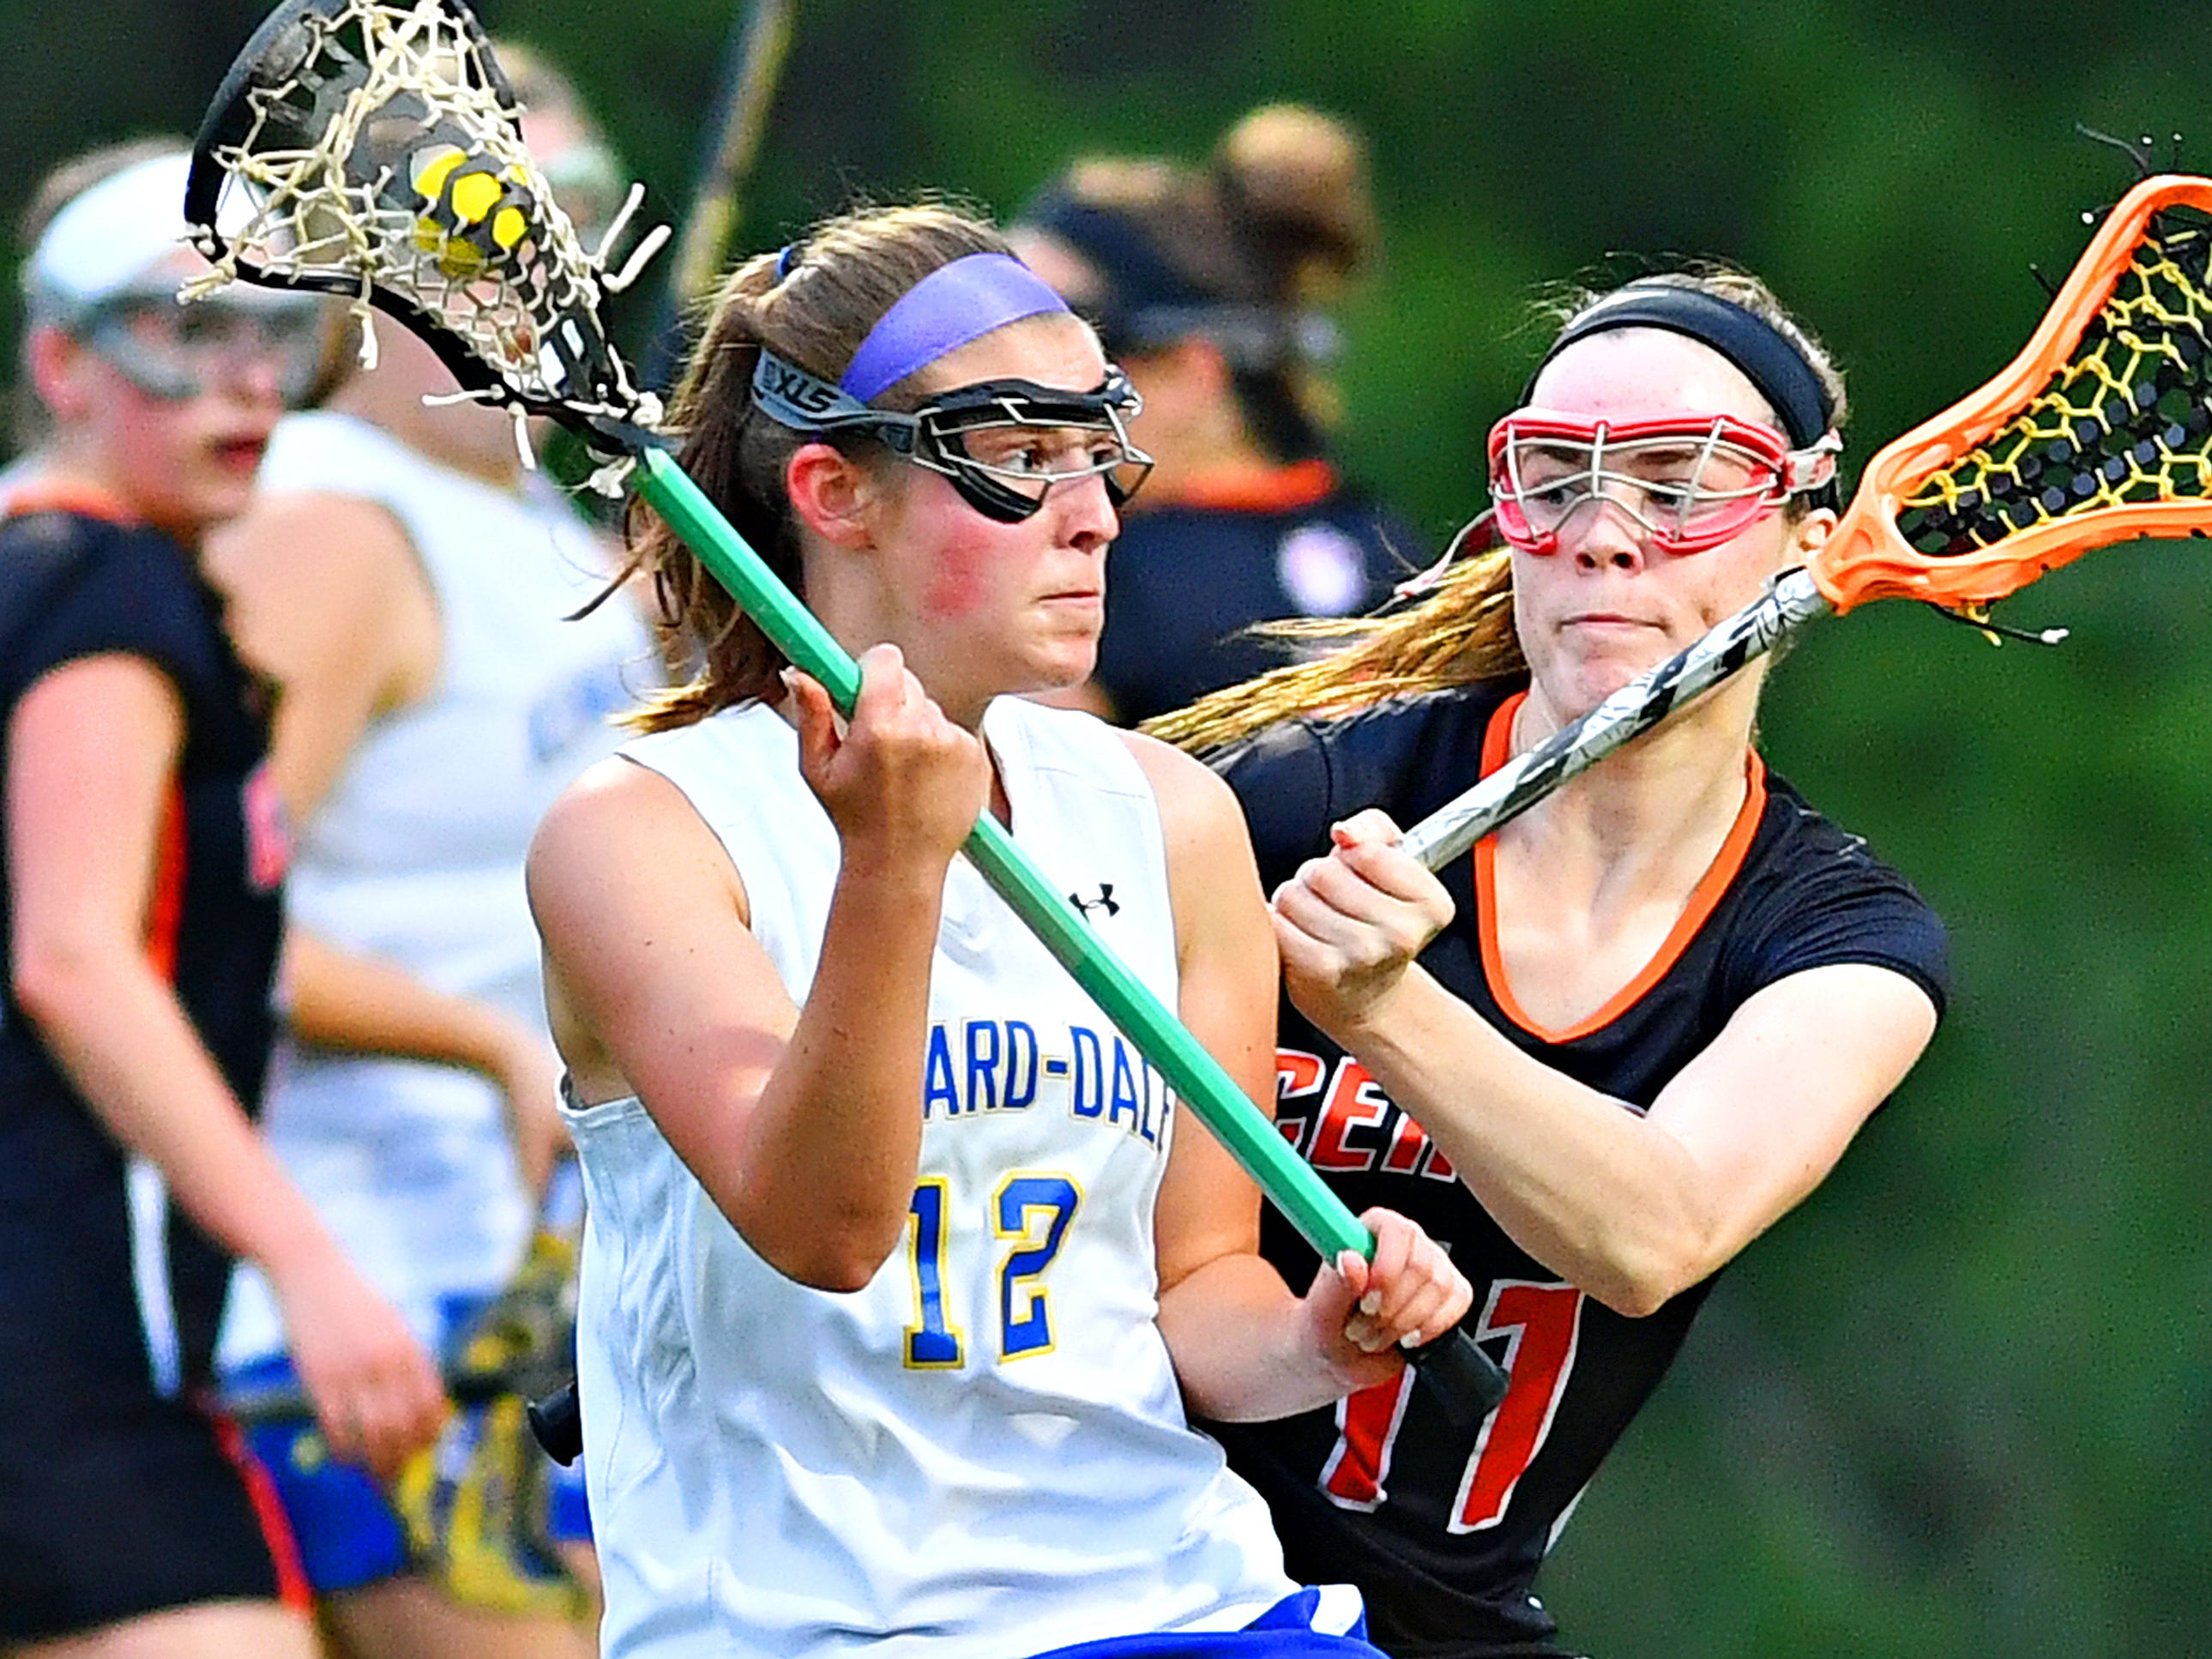 Kennard-Dale vs Central York during girls' lacrosse semifinal action at South Western High School in Hanover, Wednesday, May 8, 2019. Kennard-Dale would win the game 19-10. Dawn J. Sagert photo